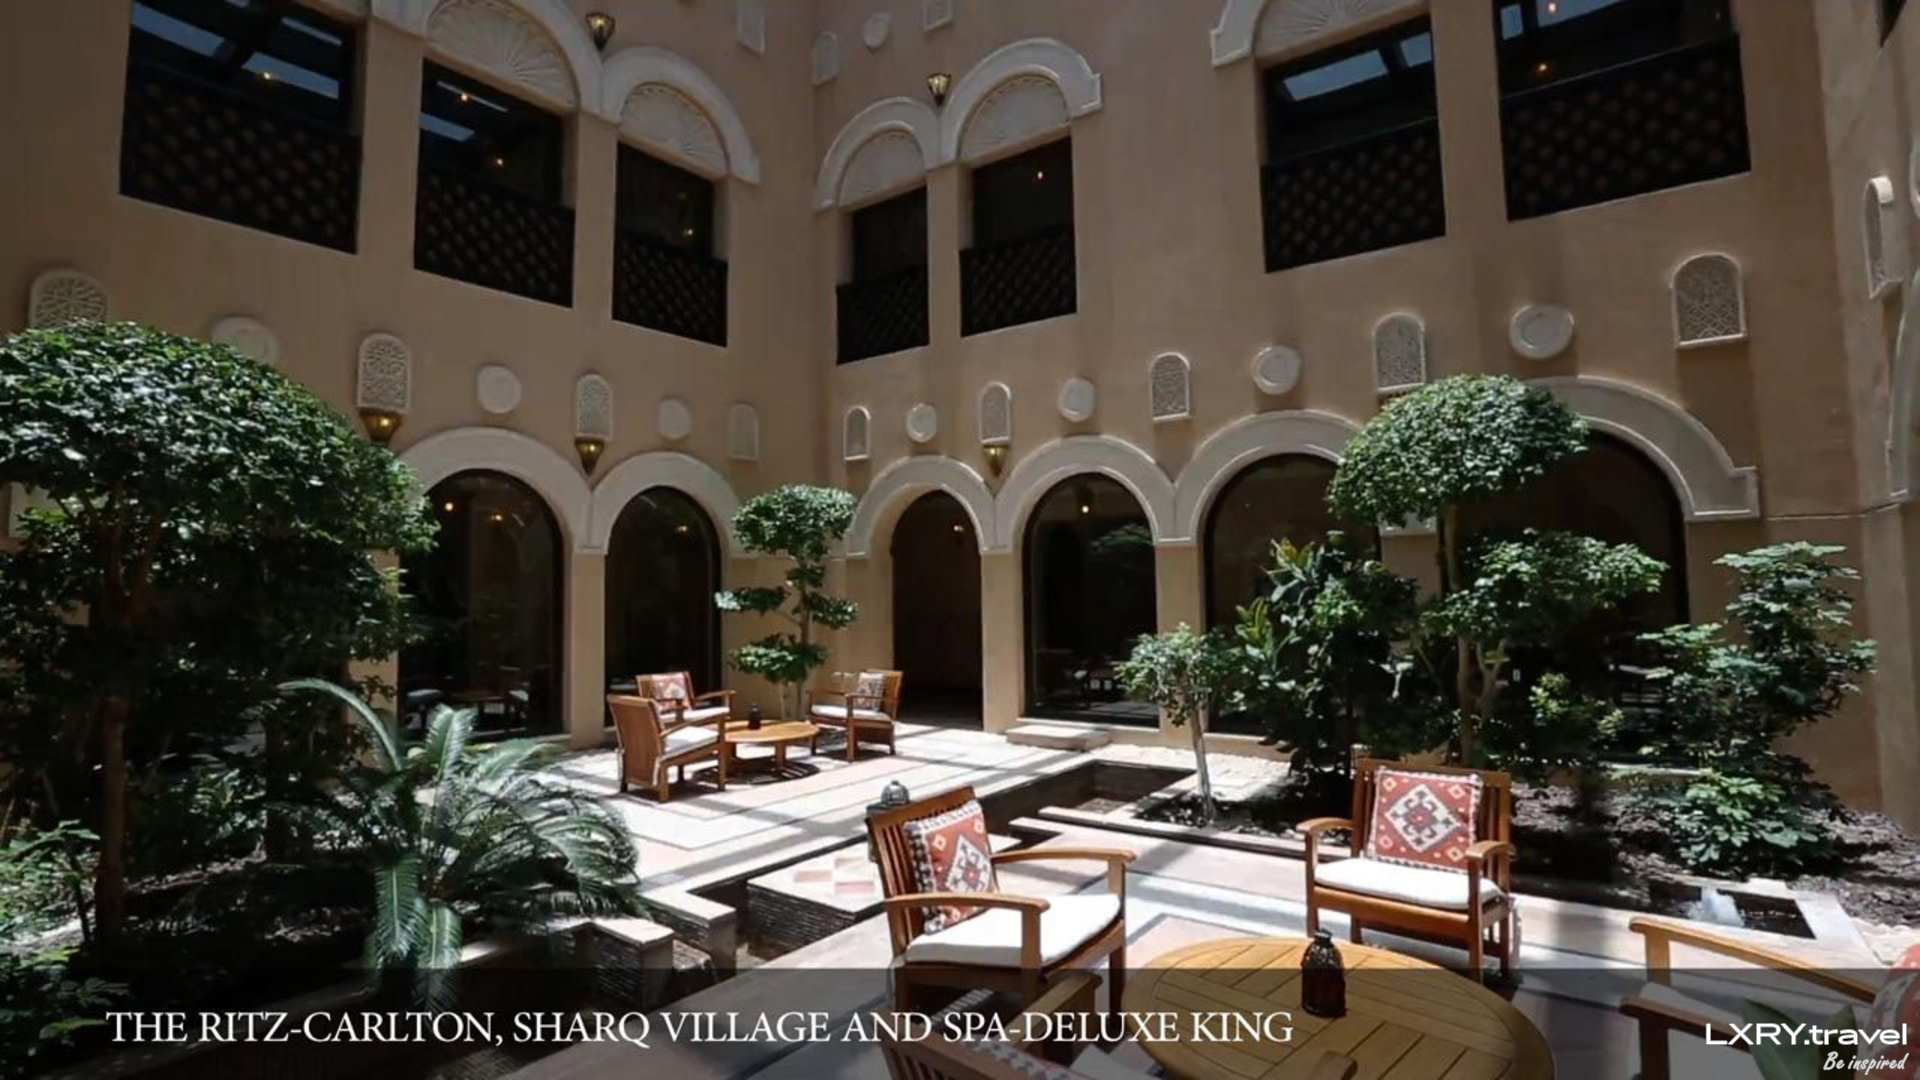 Sharq Village and Spa Hotel Operated by The Ritz-Carlton 7/69